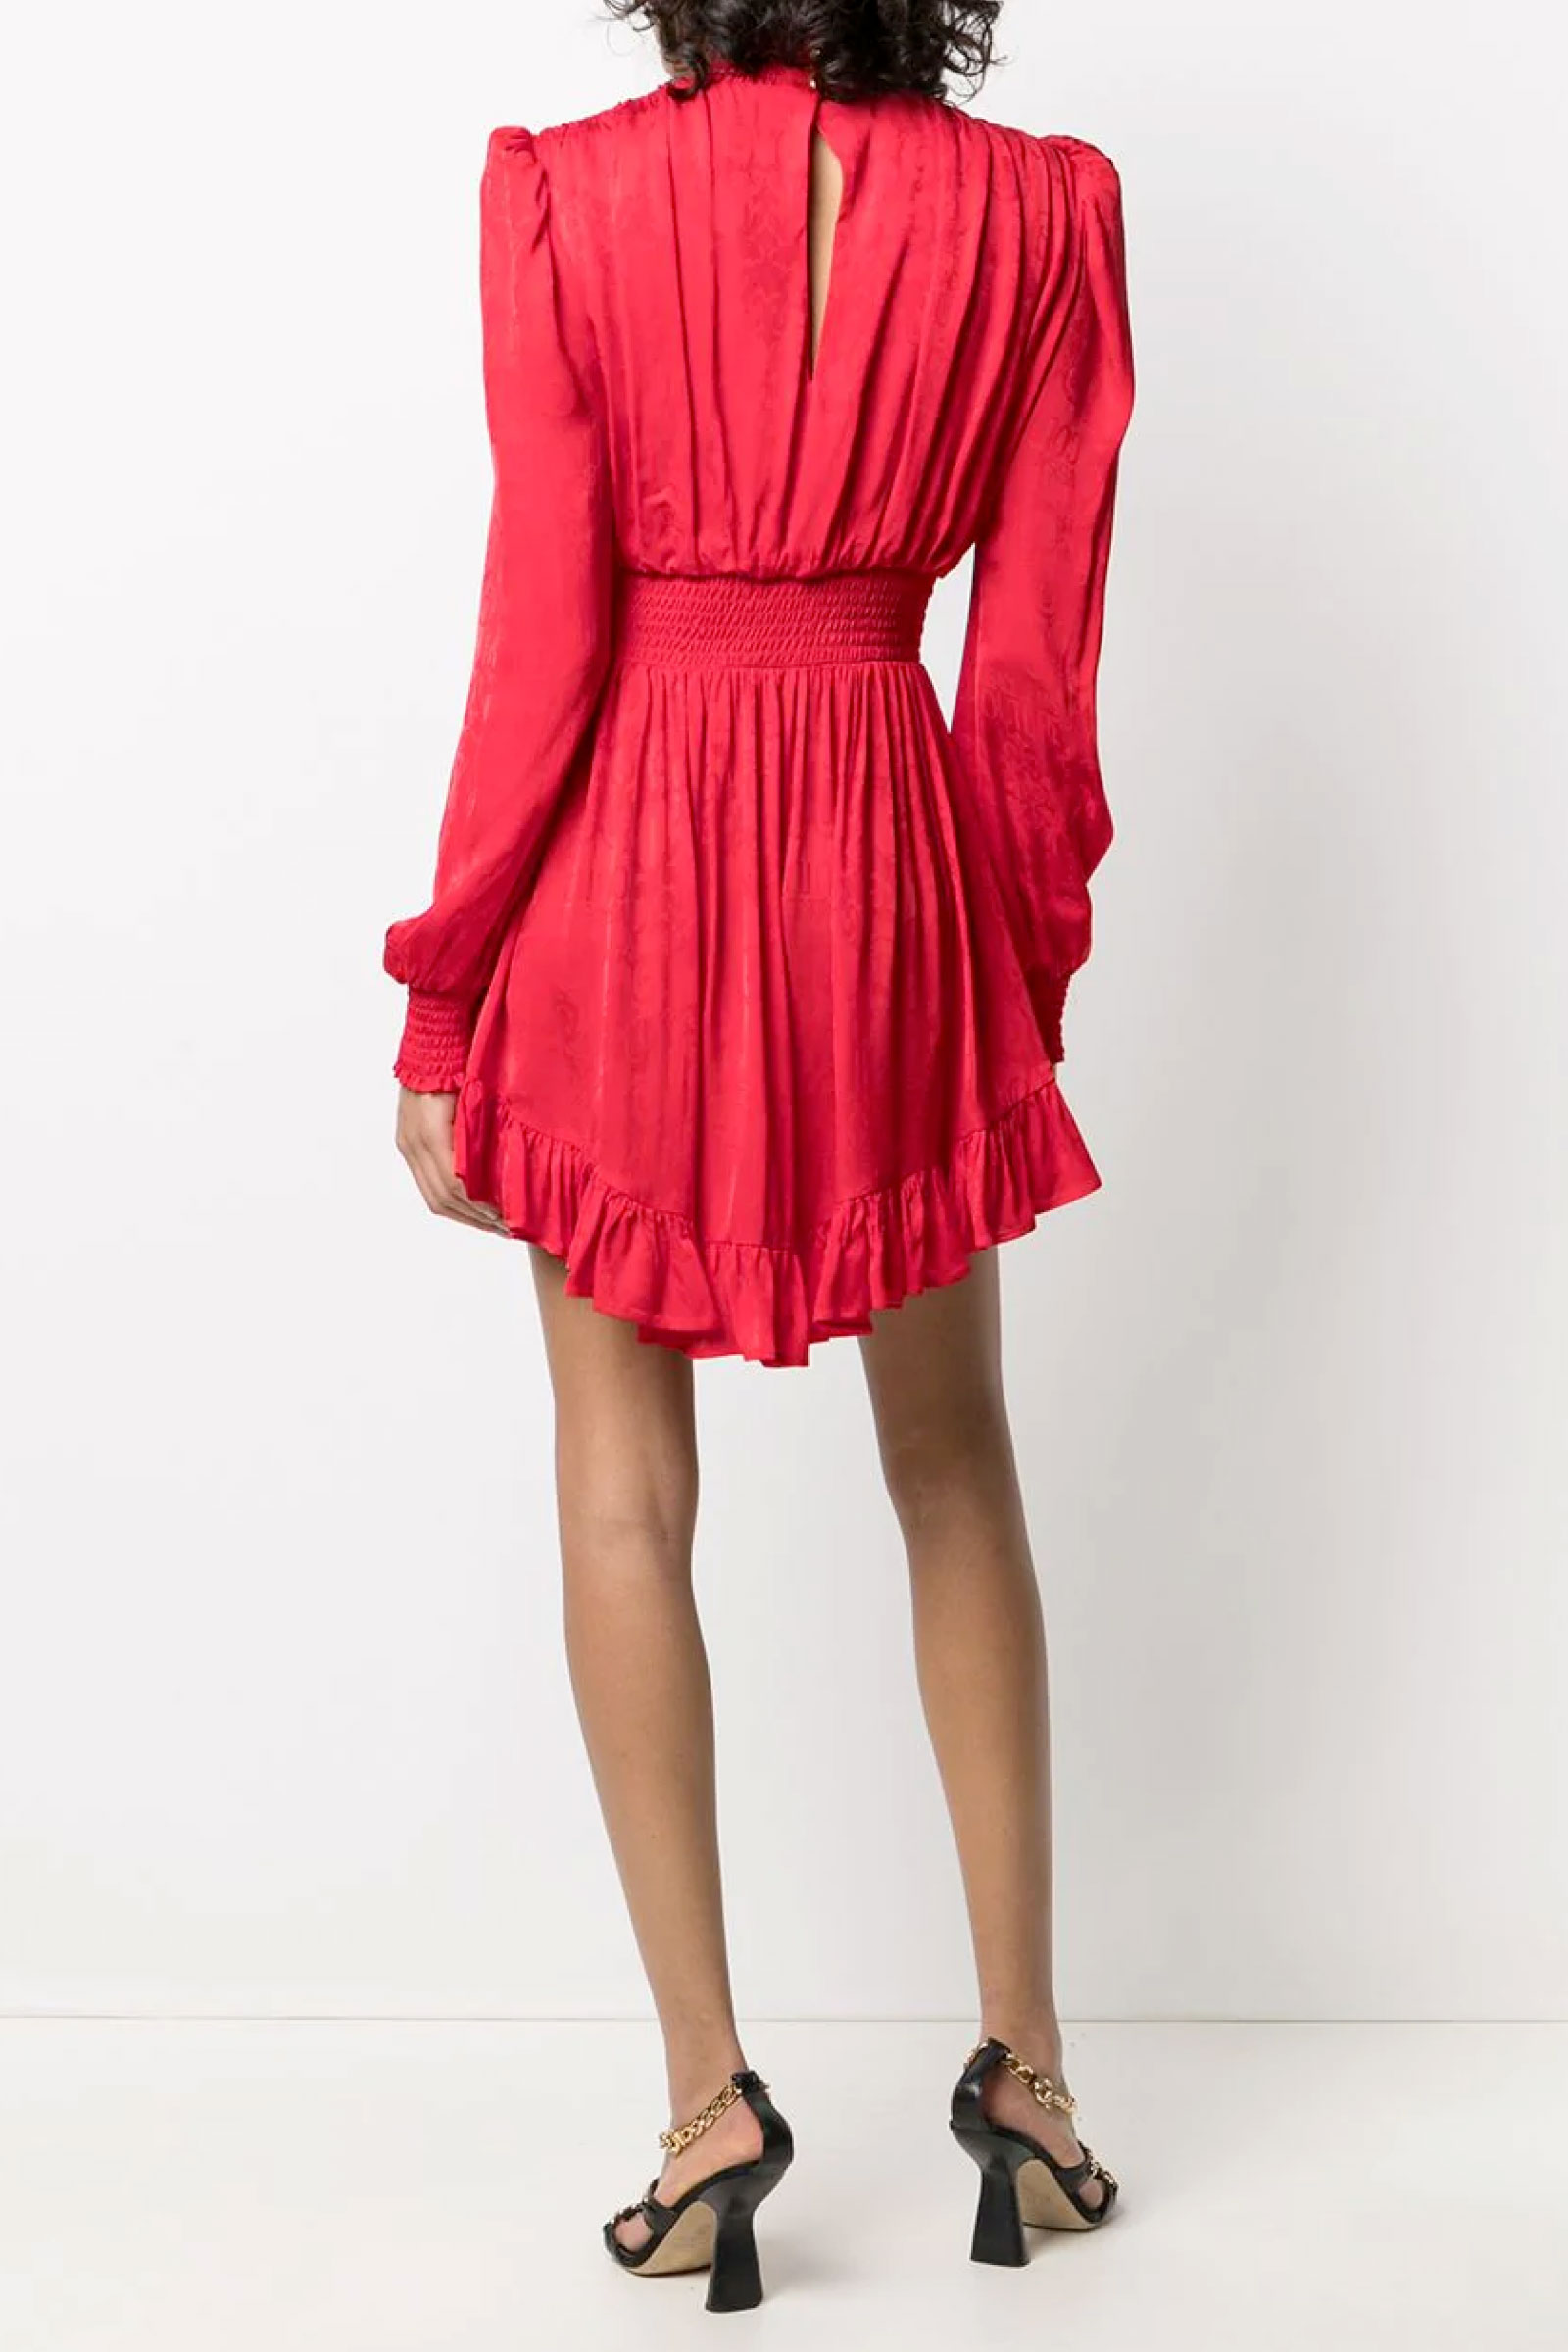 VERSACE JEANS COUTURE Woman Dress VERSACE JEANS COUTURE | Dress | D2HWA41009475514